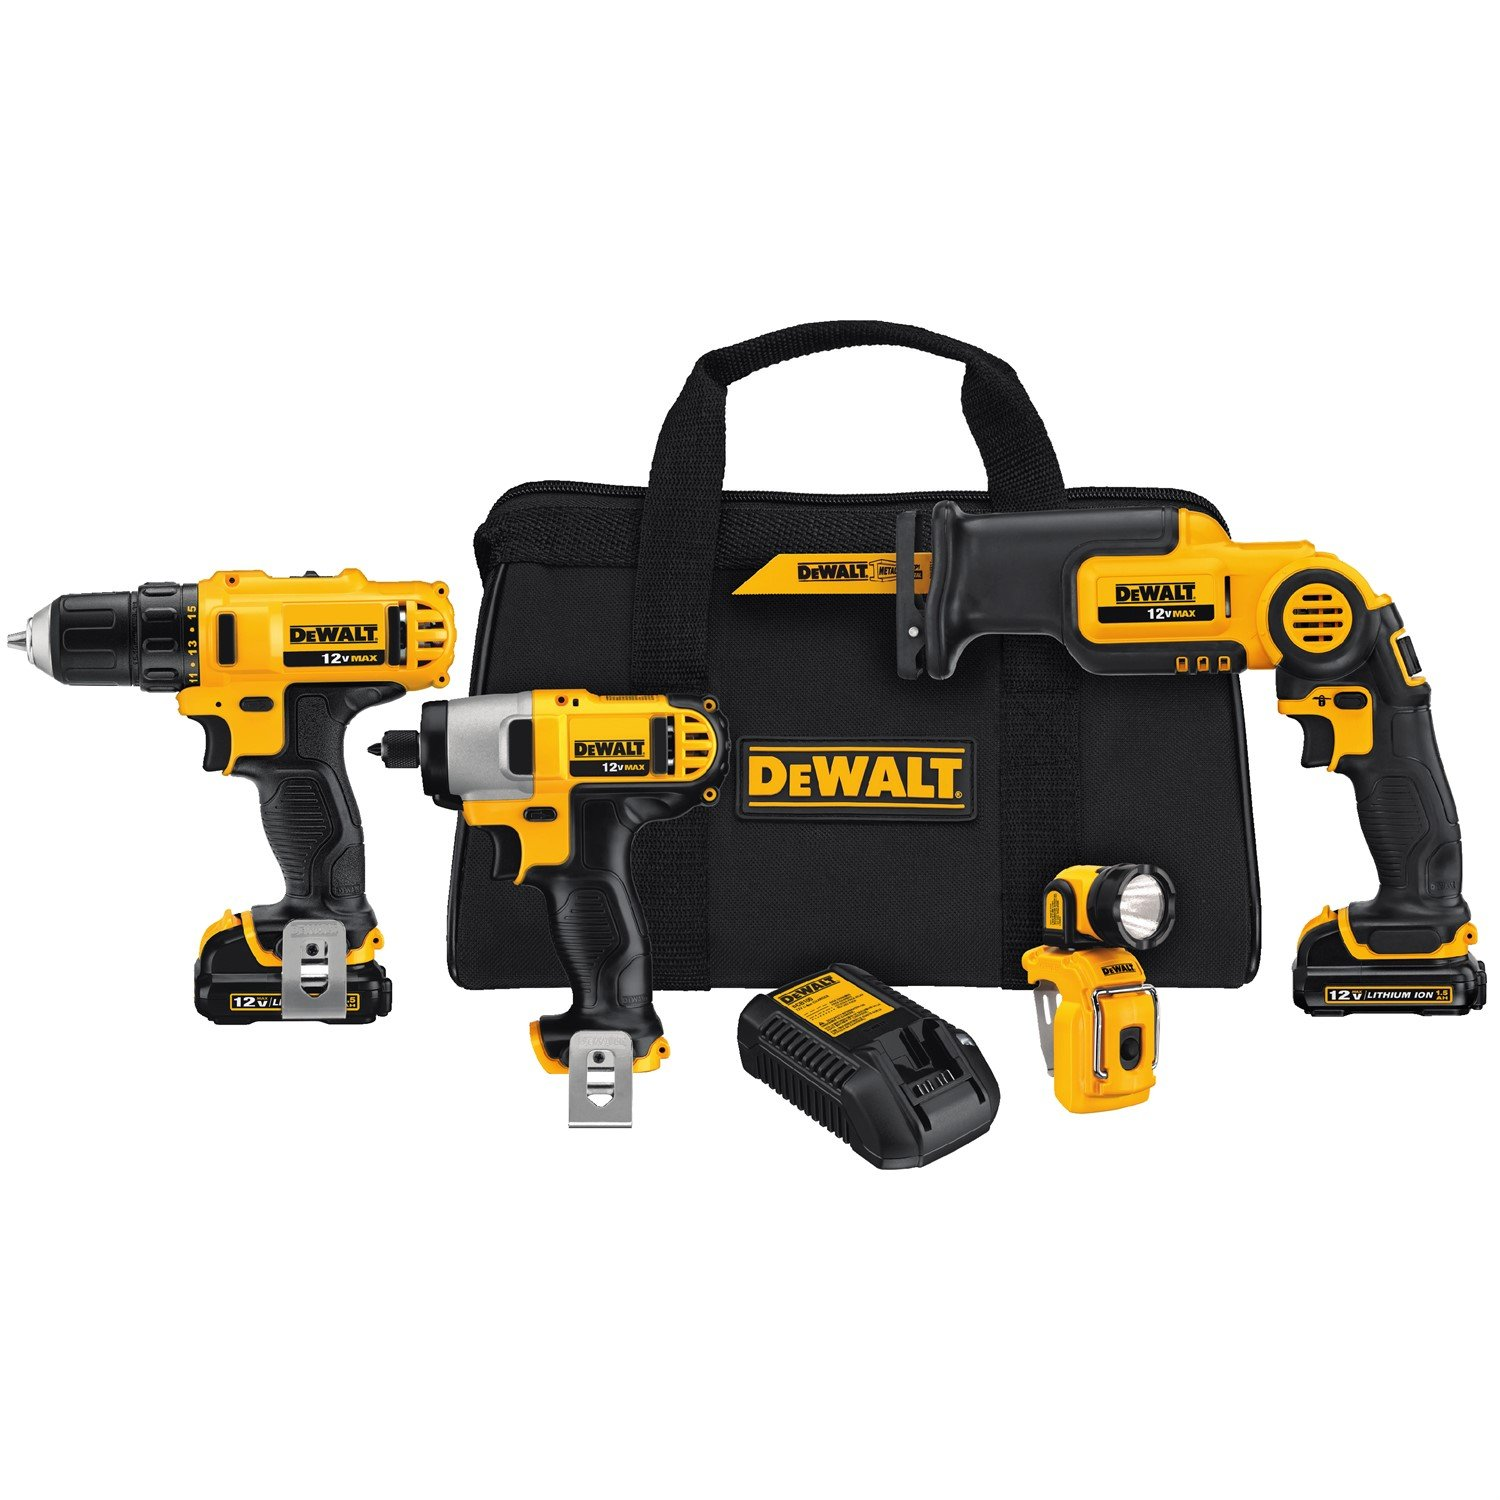 829df8f5bd1 DEWALT DCK413S2 12-Volt MAX 4-Tool Combo Kit - DEWDCK413S2 - Power Tool  Combo Packs - Amazon.com